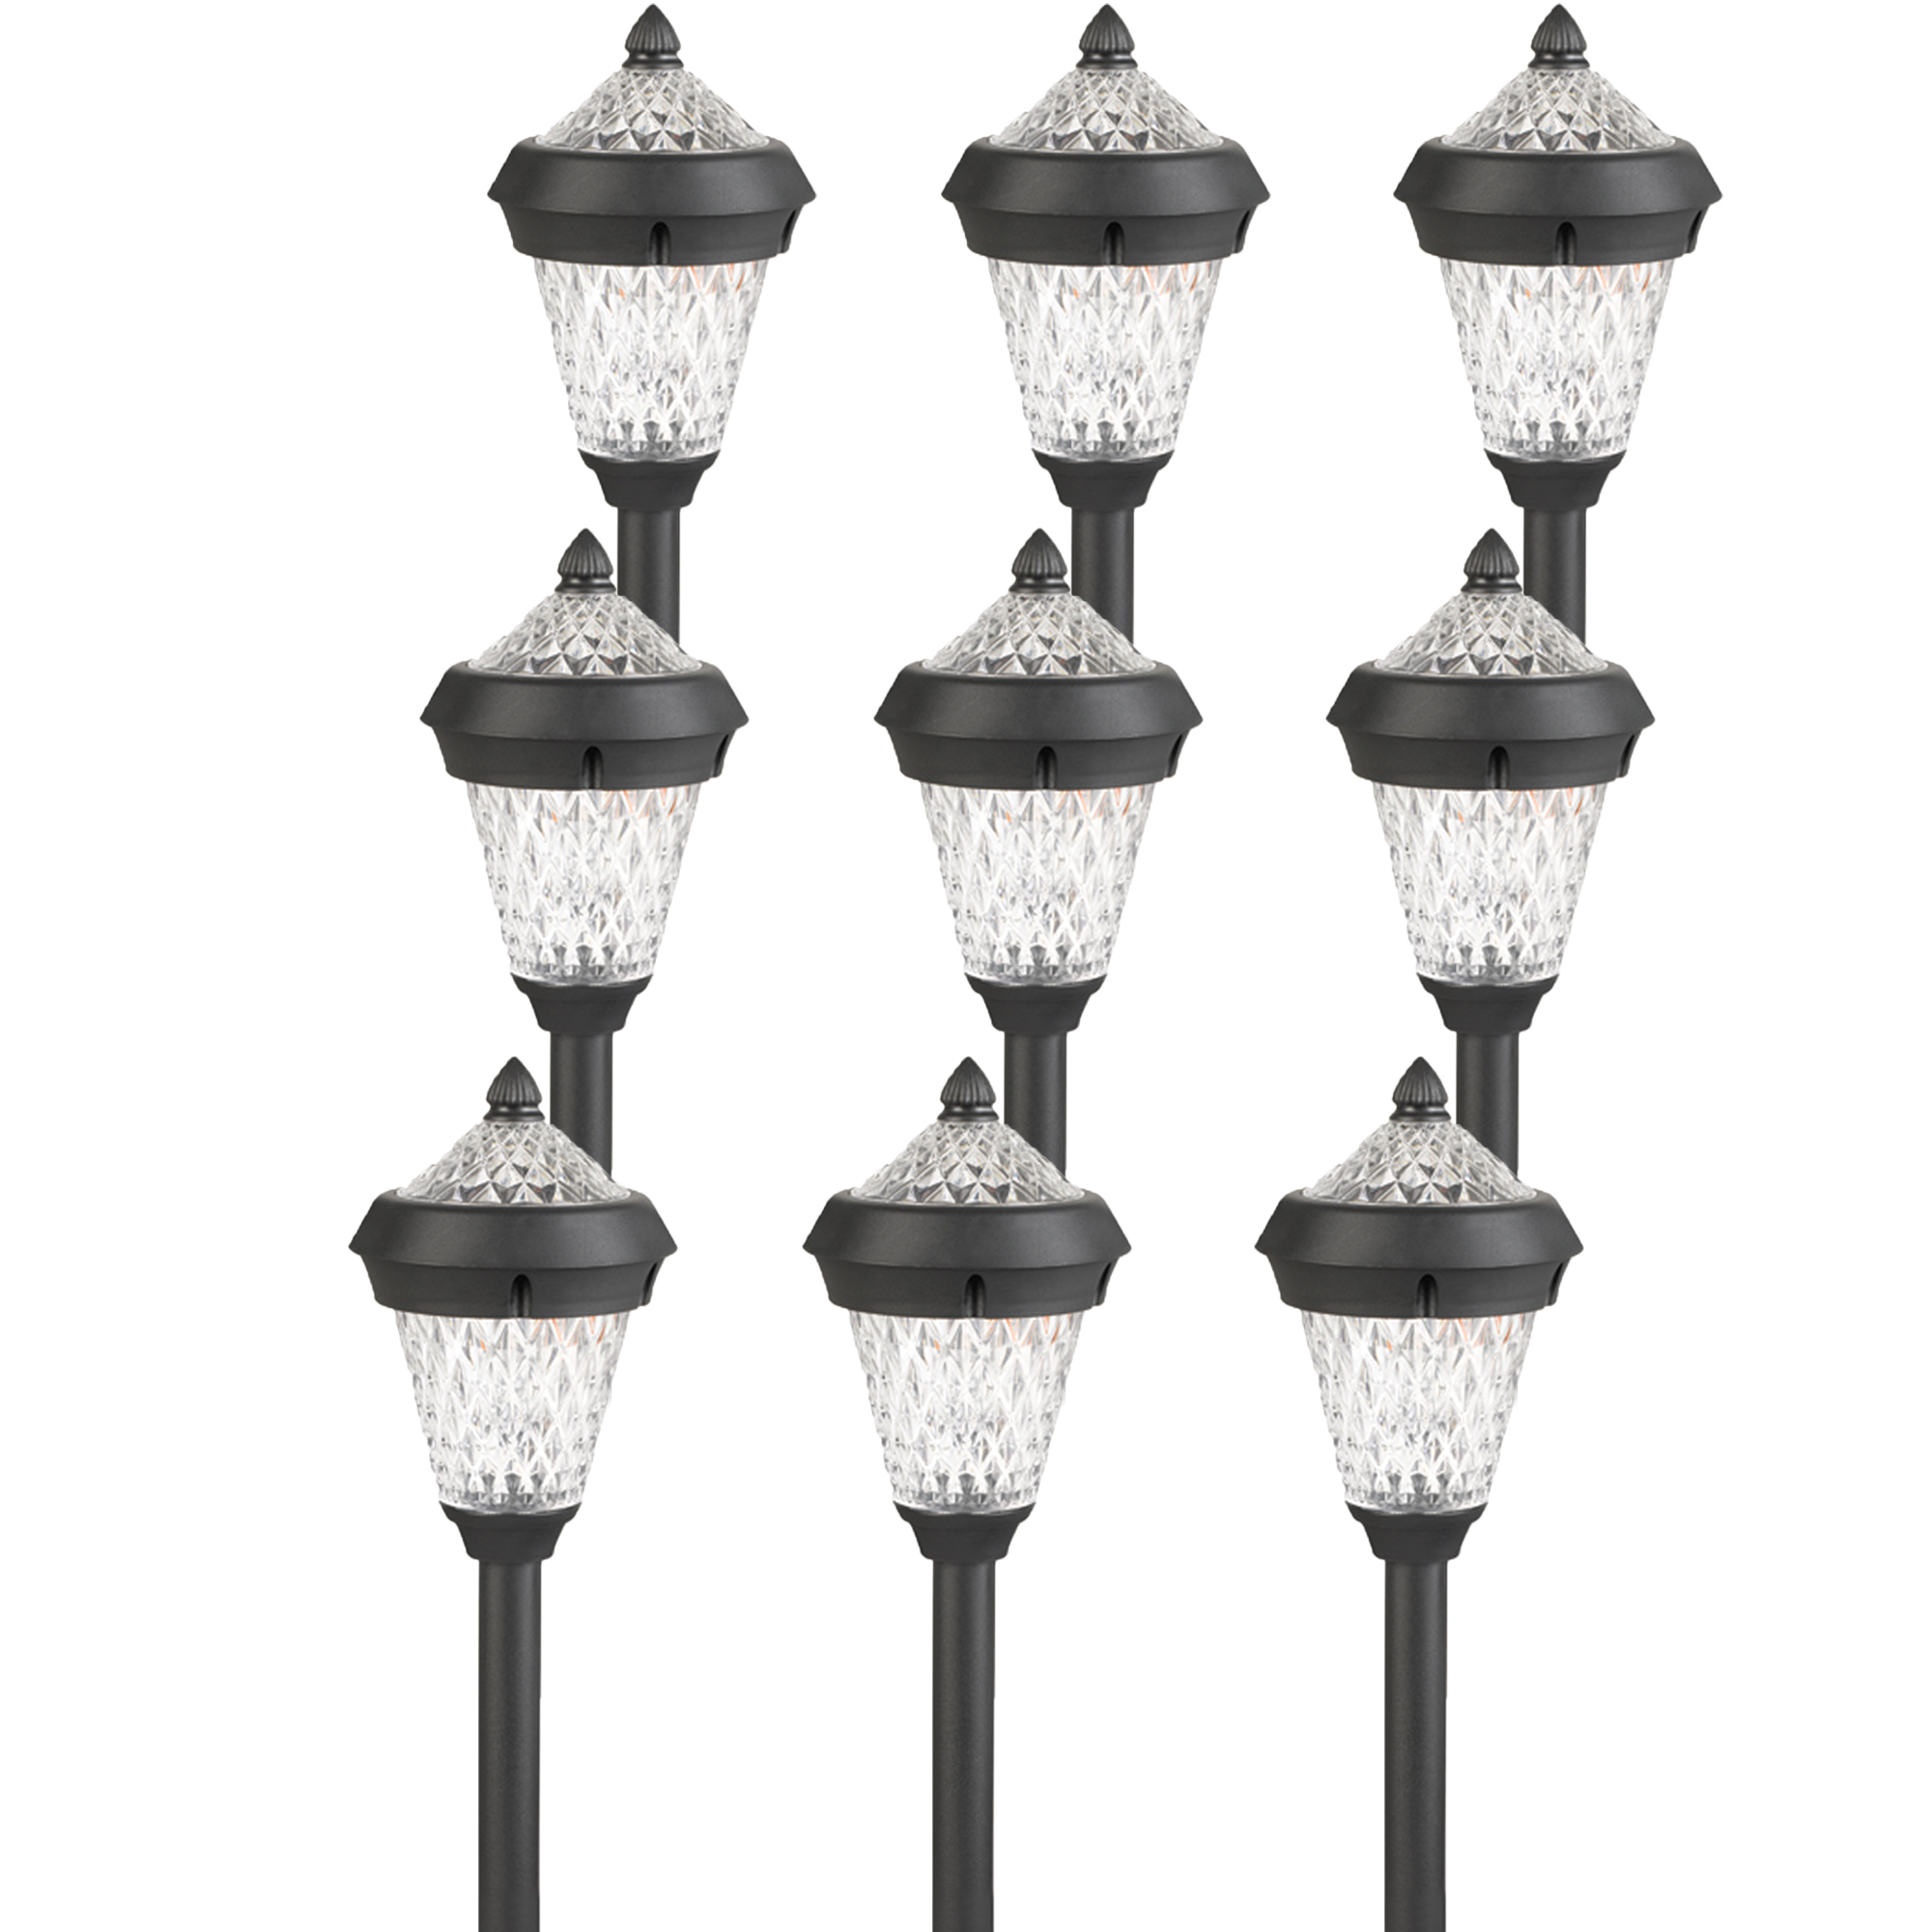 atlanta black solar outdoor garden stake pathway led light ebay